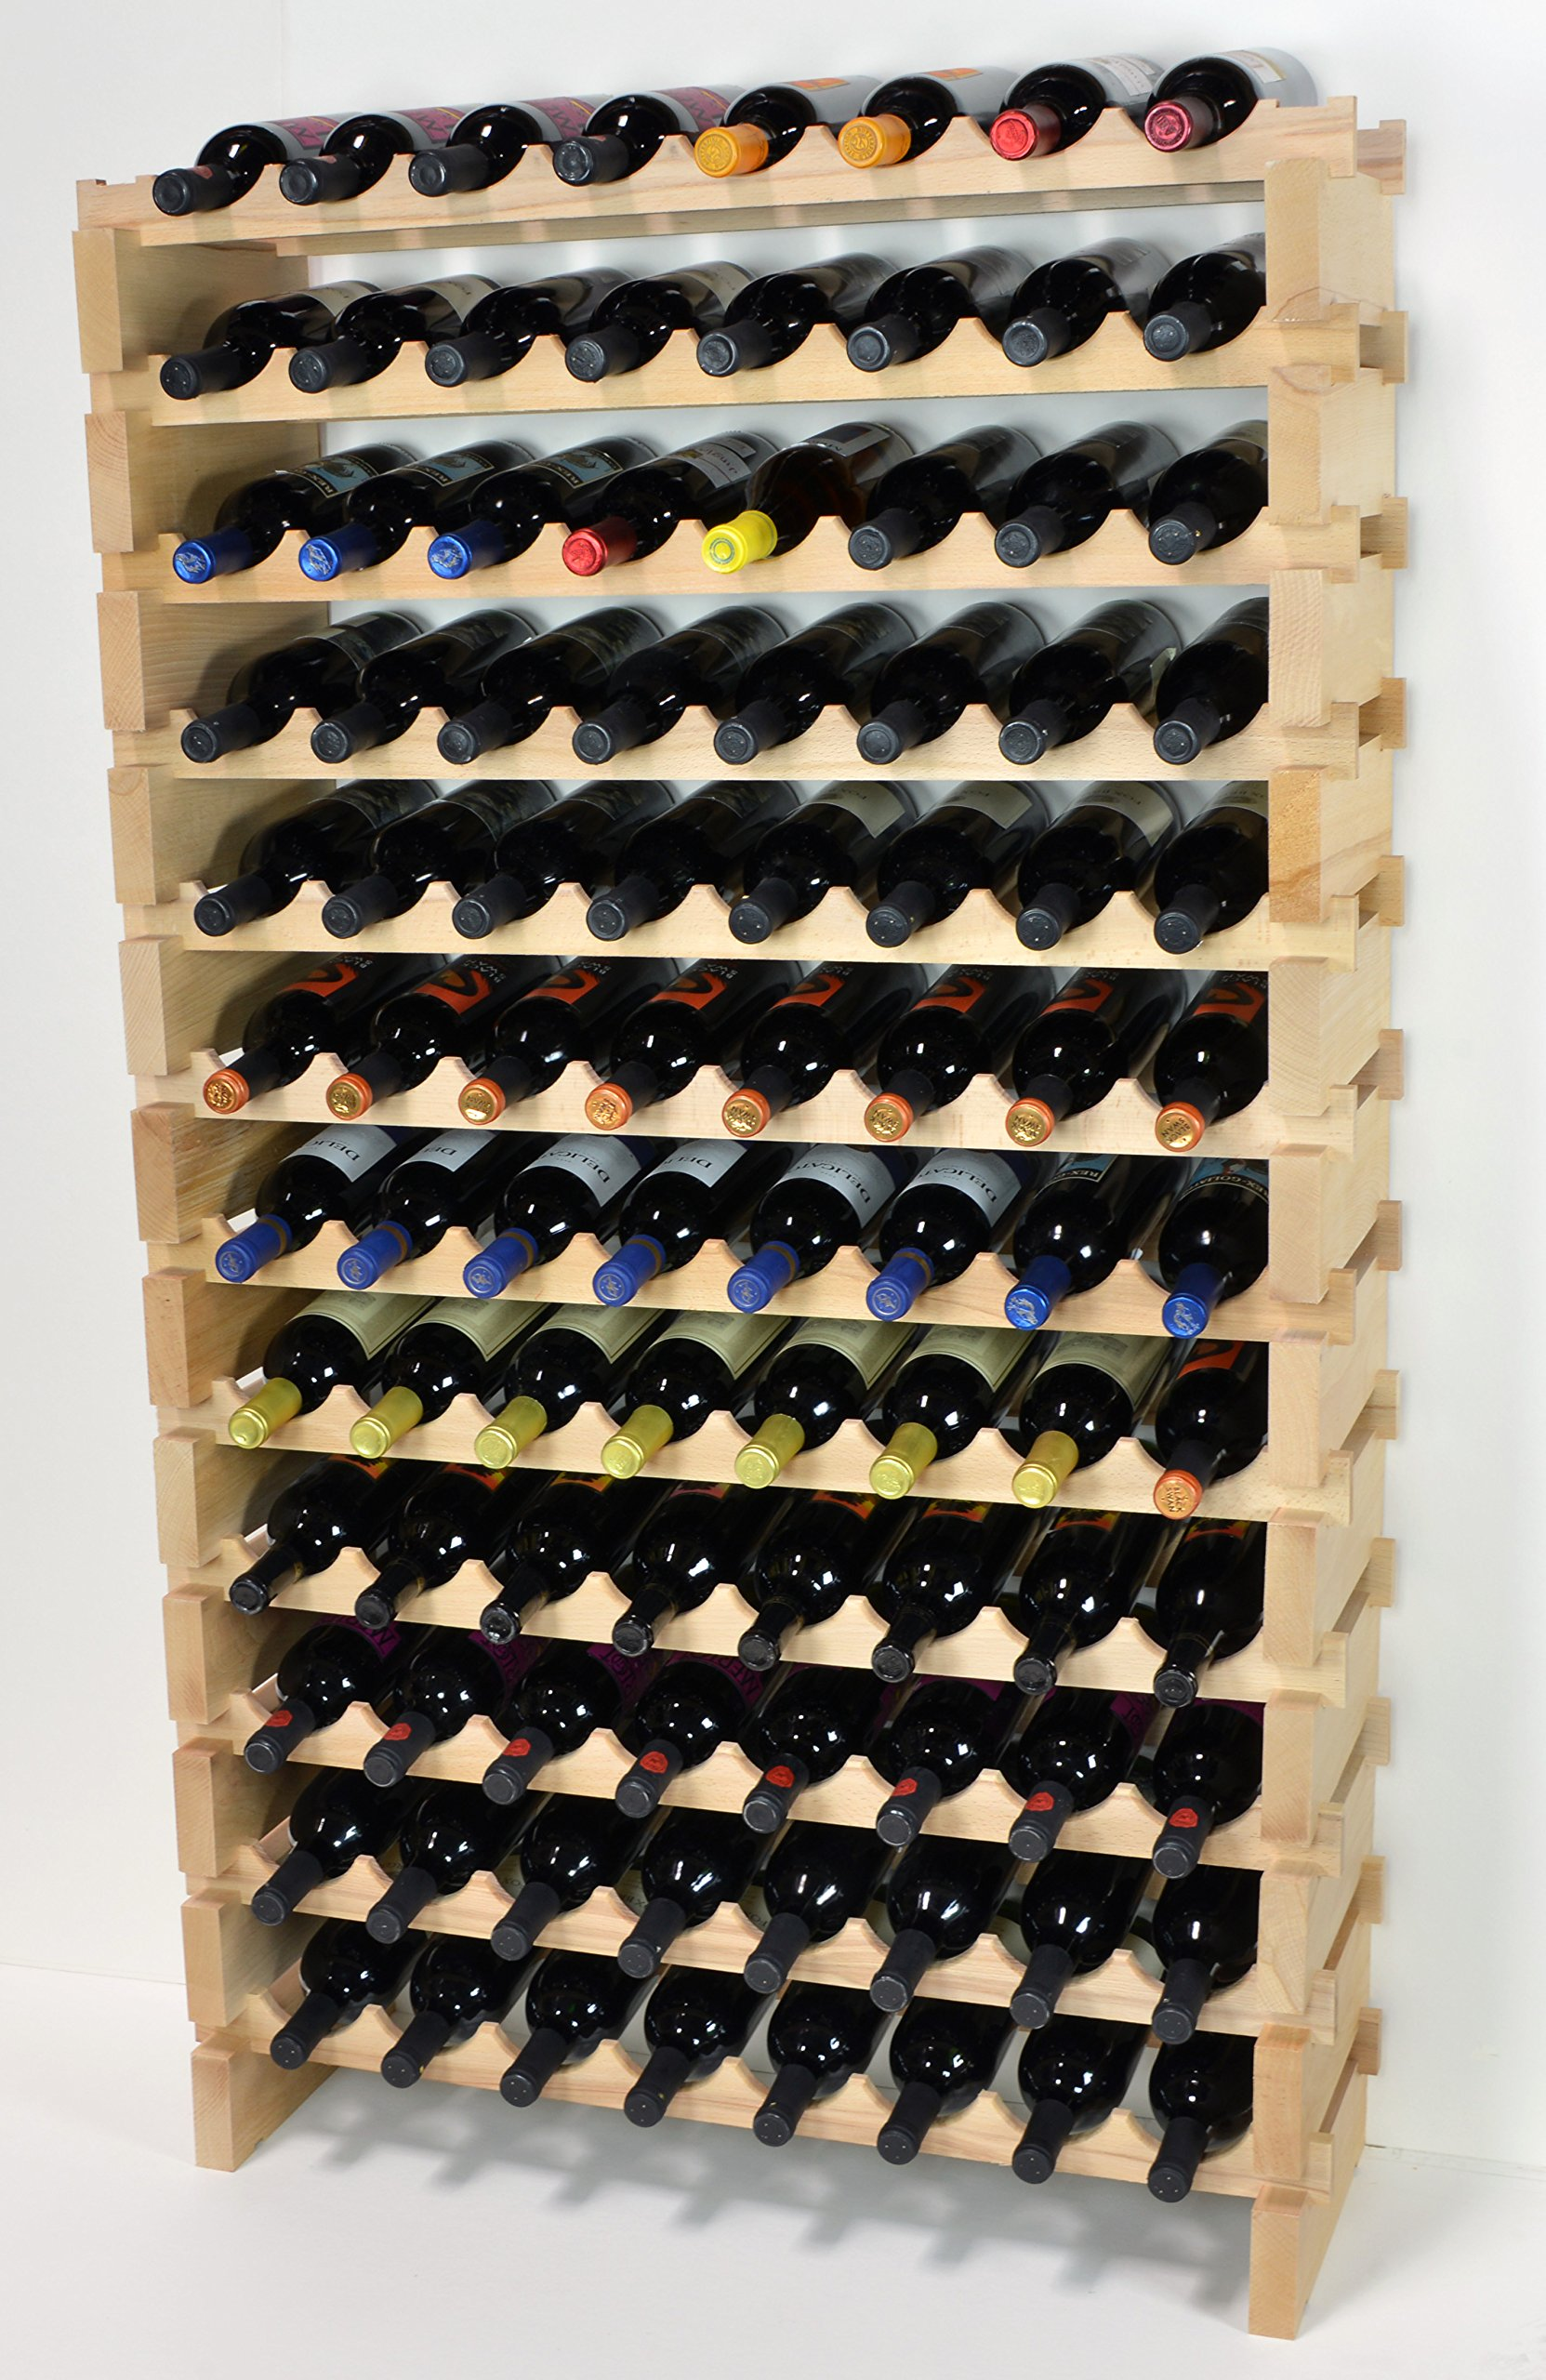 Modular Wine Rack Pine Wood 32-96 Bottle Capacity Storage 8 Bottles Across up to 12 Rows Stackable Newest Improved Model (96 Bottles - 12 Rows) by sfDisplay.com,LLC. (Image #1)